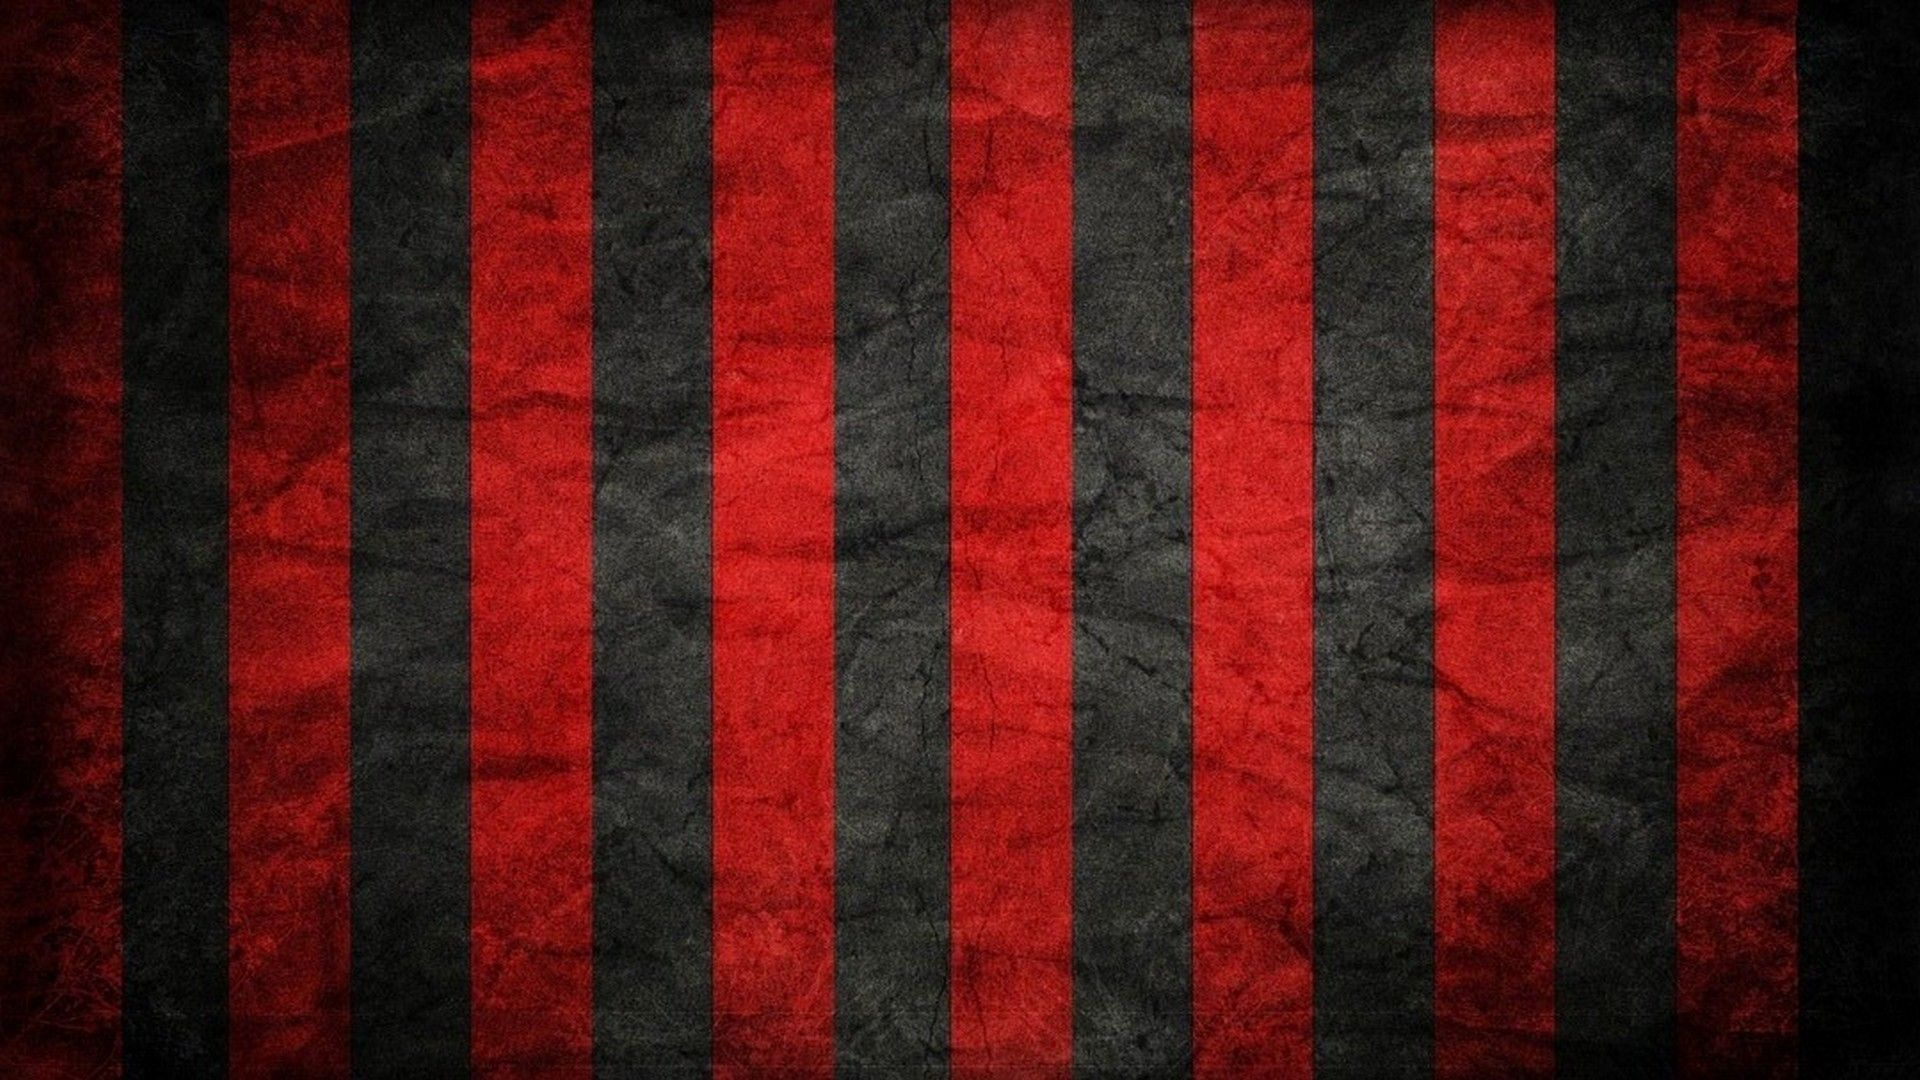 Red Wallpaper Hd For Laptop Striped Wallpaper Red Wallpaper